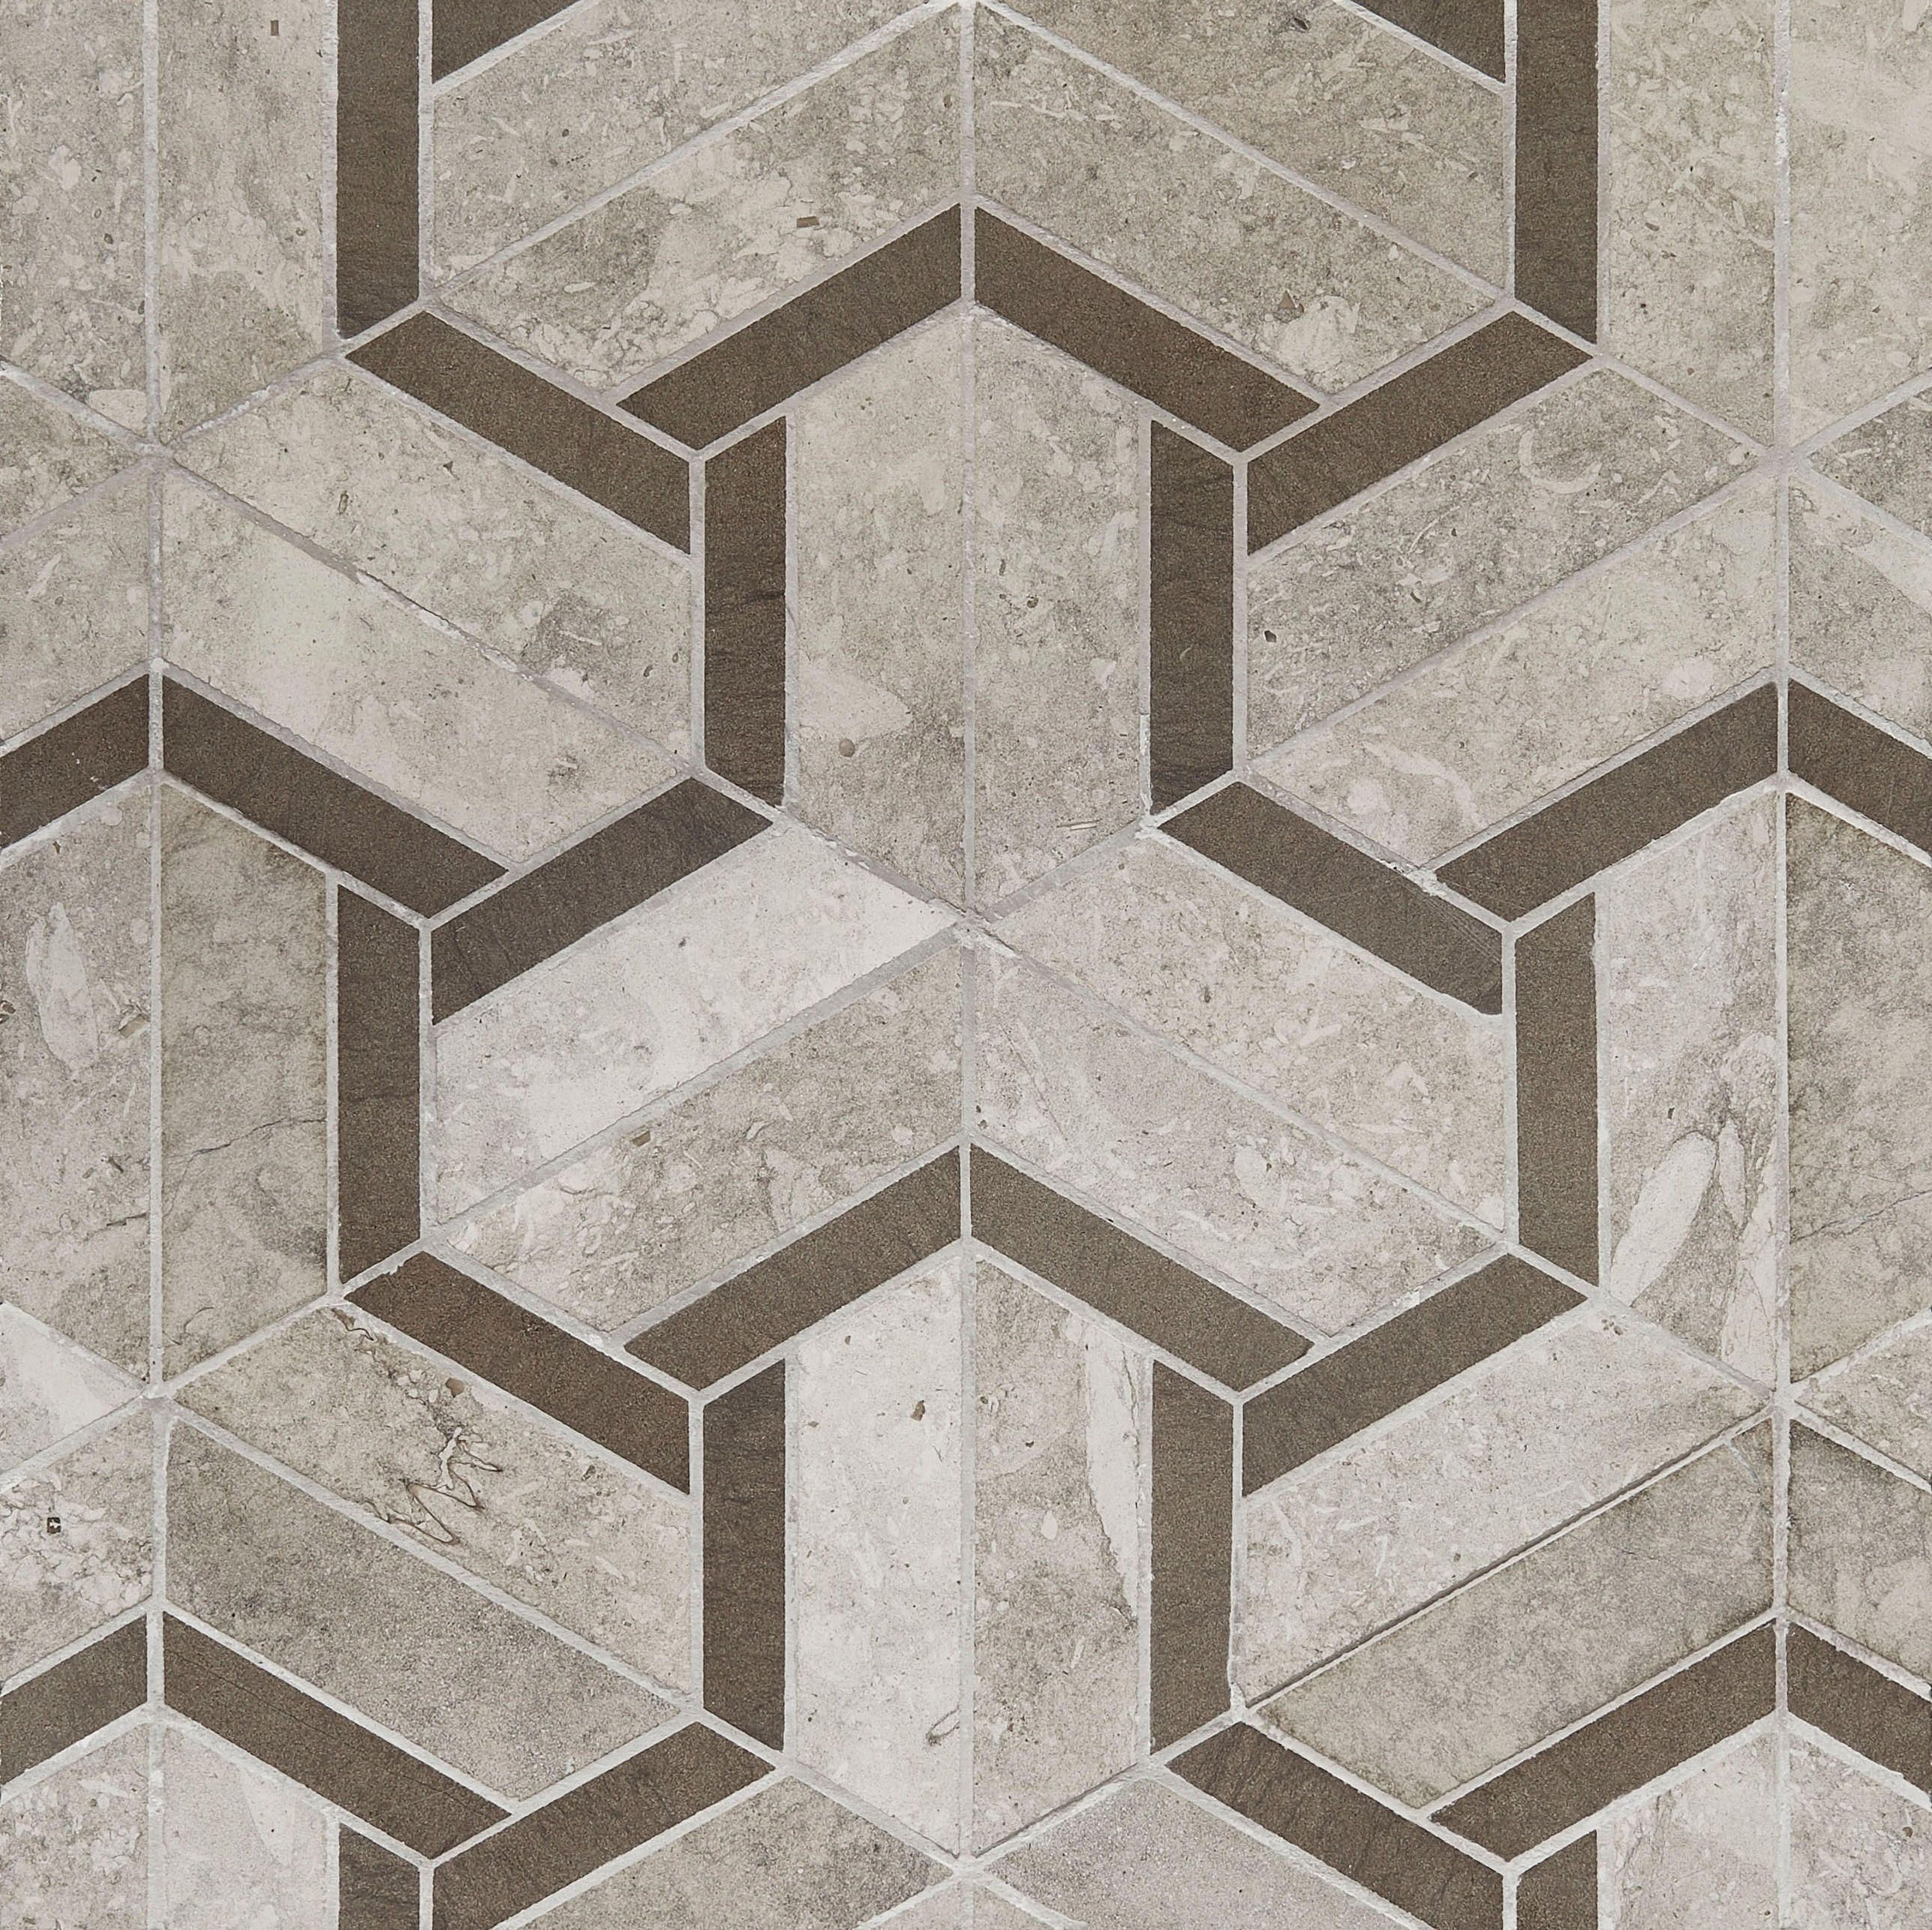 Lovely 16 Ceiling Tiles Big 18X18 Ceramic Tile Flat 18X18 Floor Tile 2 X 12 Subway Tile Youthful 2X2 Ceramic Floor Tile White2X4 Subway Tile Backsplash All About Art Deco Maze (Large) By Claybrook Interiors Ltd. On ..